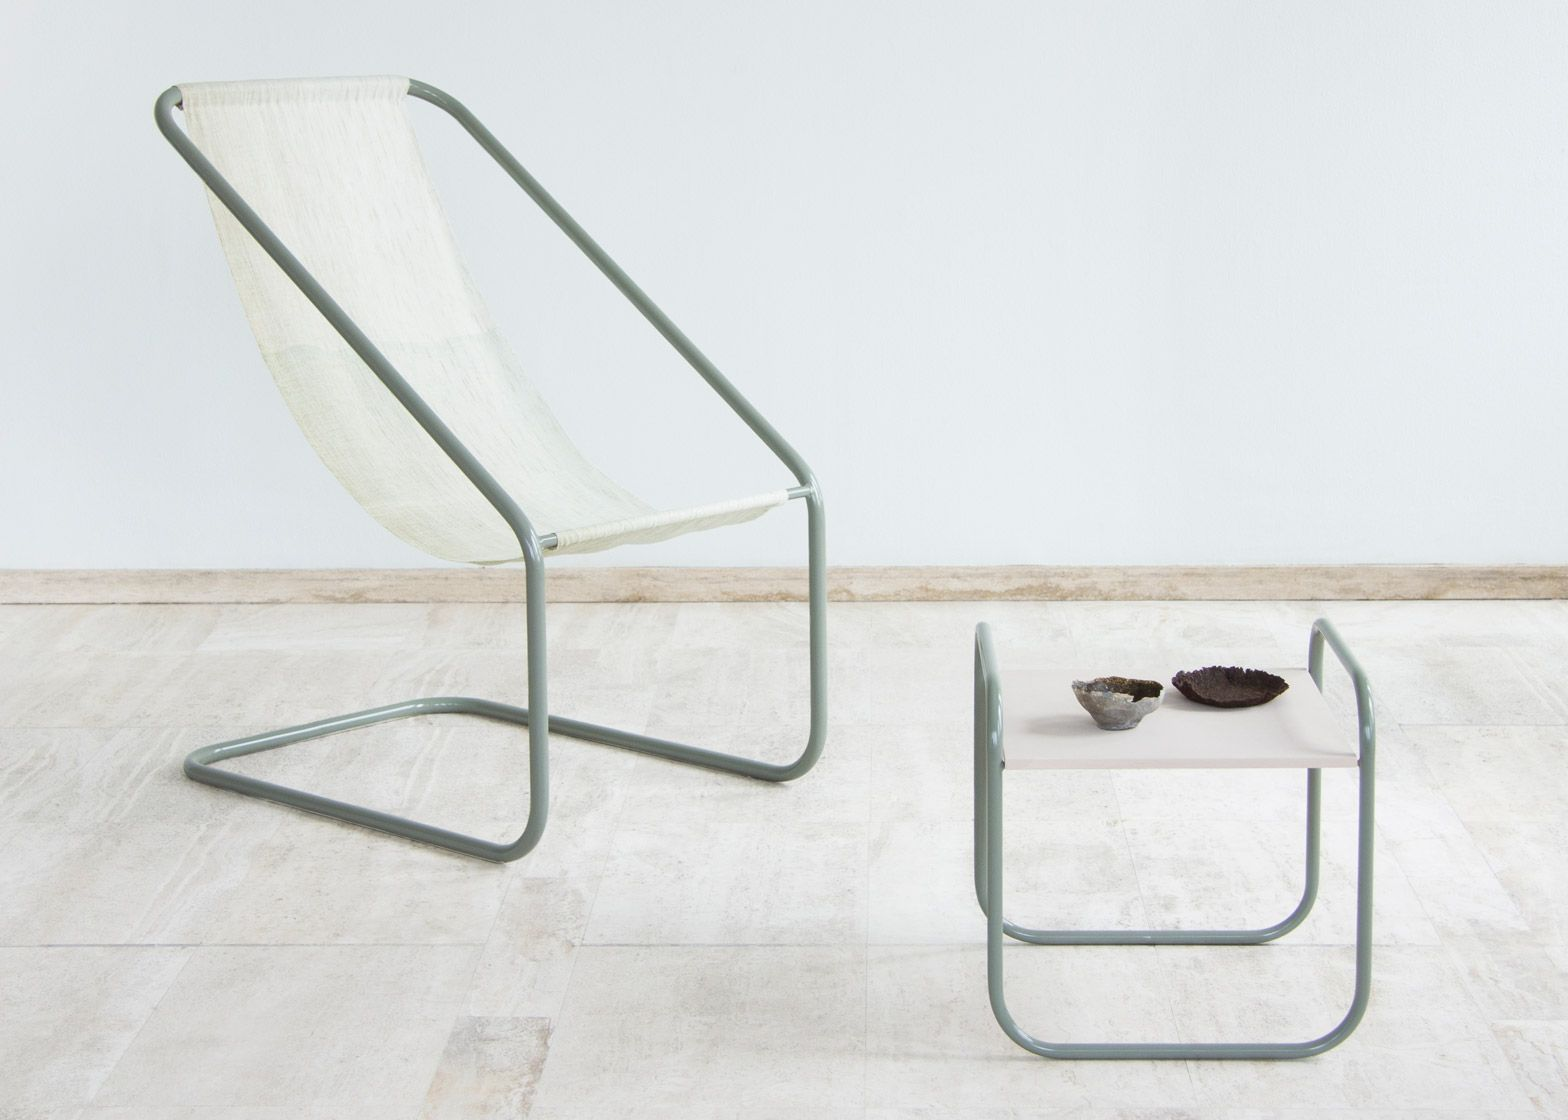 Nienke hoogvlietus sea me furniture is made from woven algae